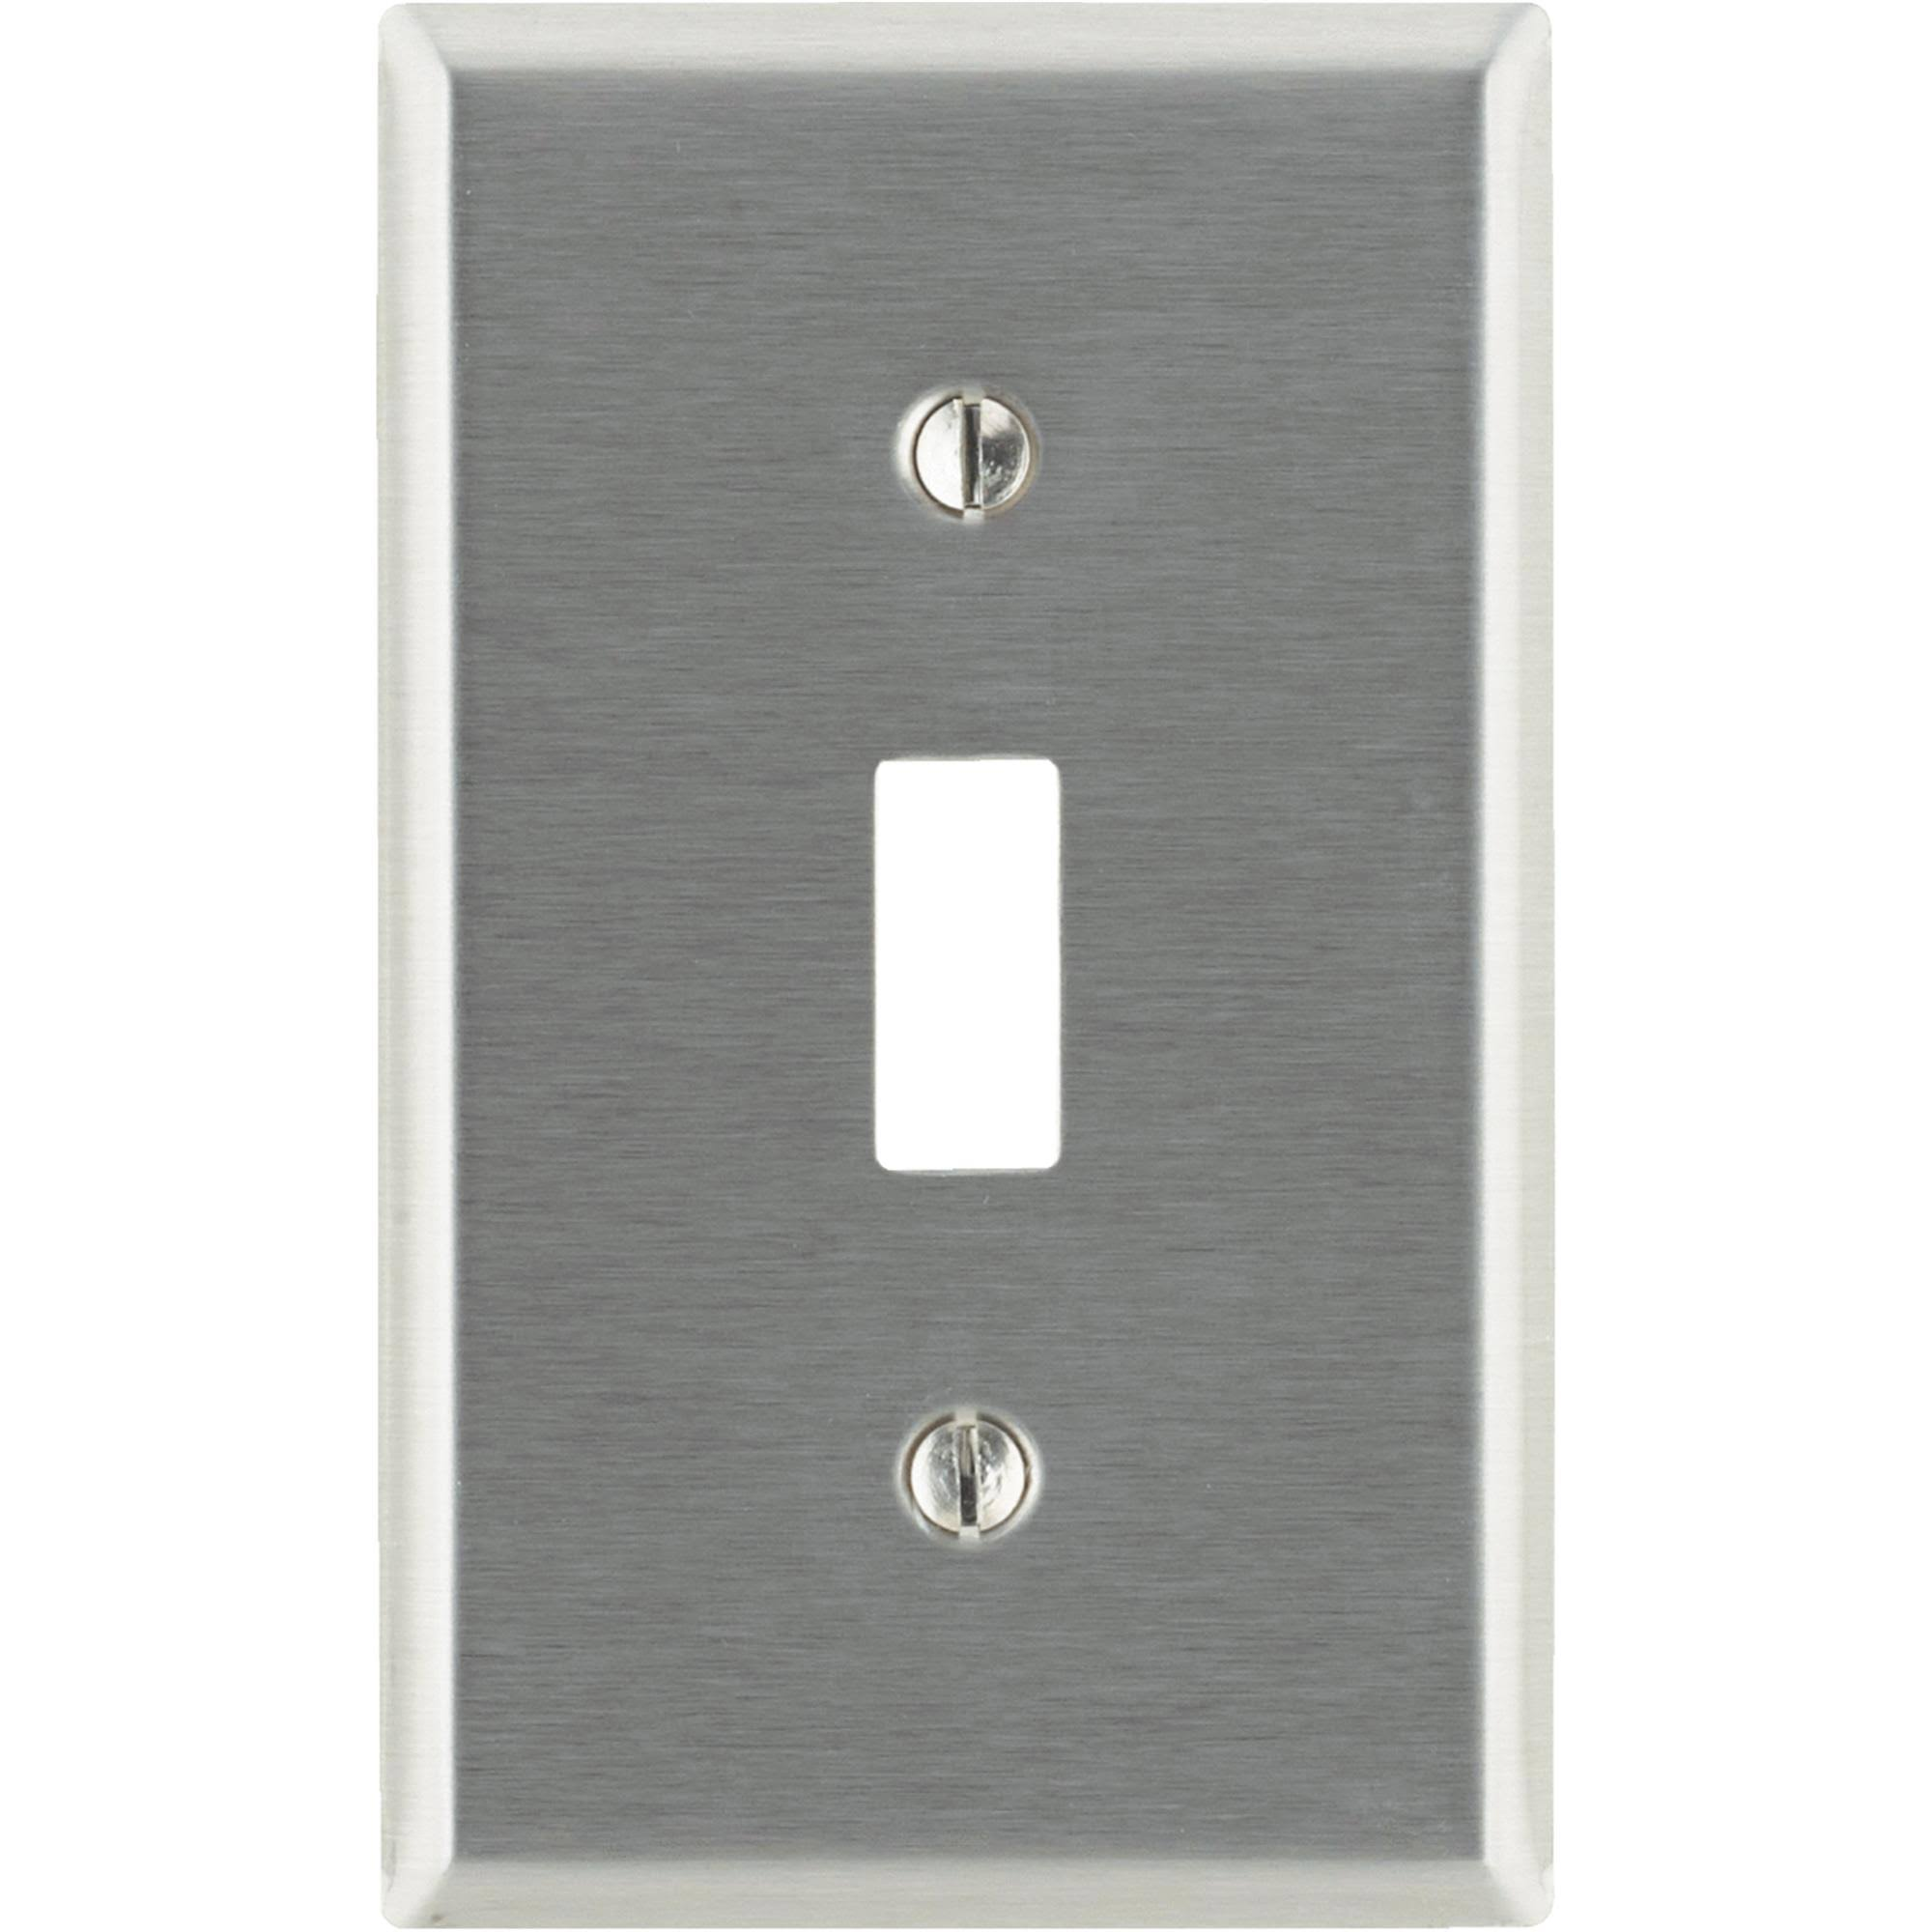 Leviton Stainless Steel Toggle Wall Plate - 1 Gang, Silver